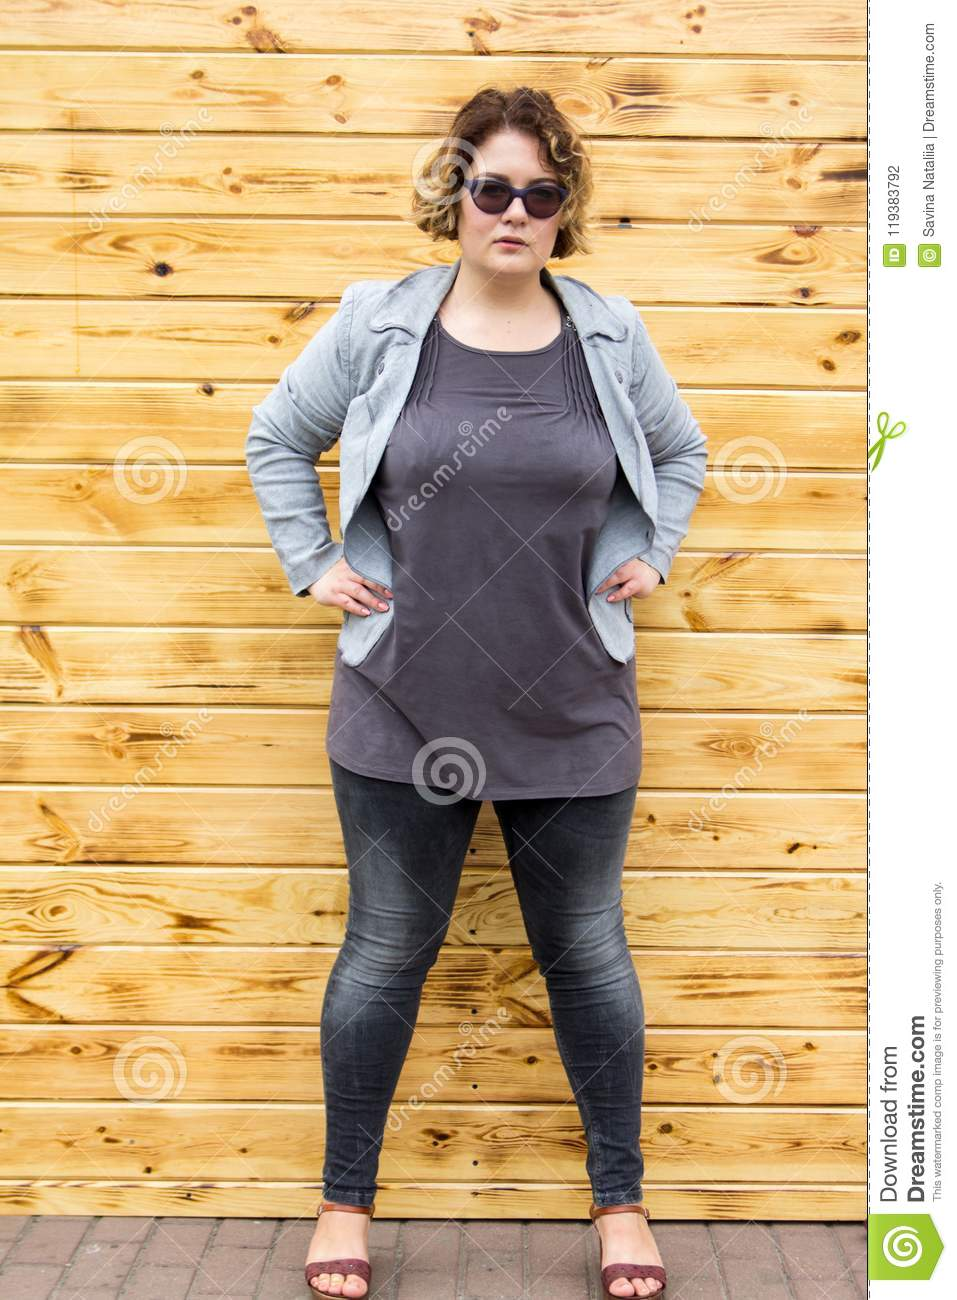 Saggy granny porn pictures